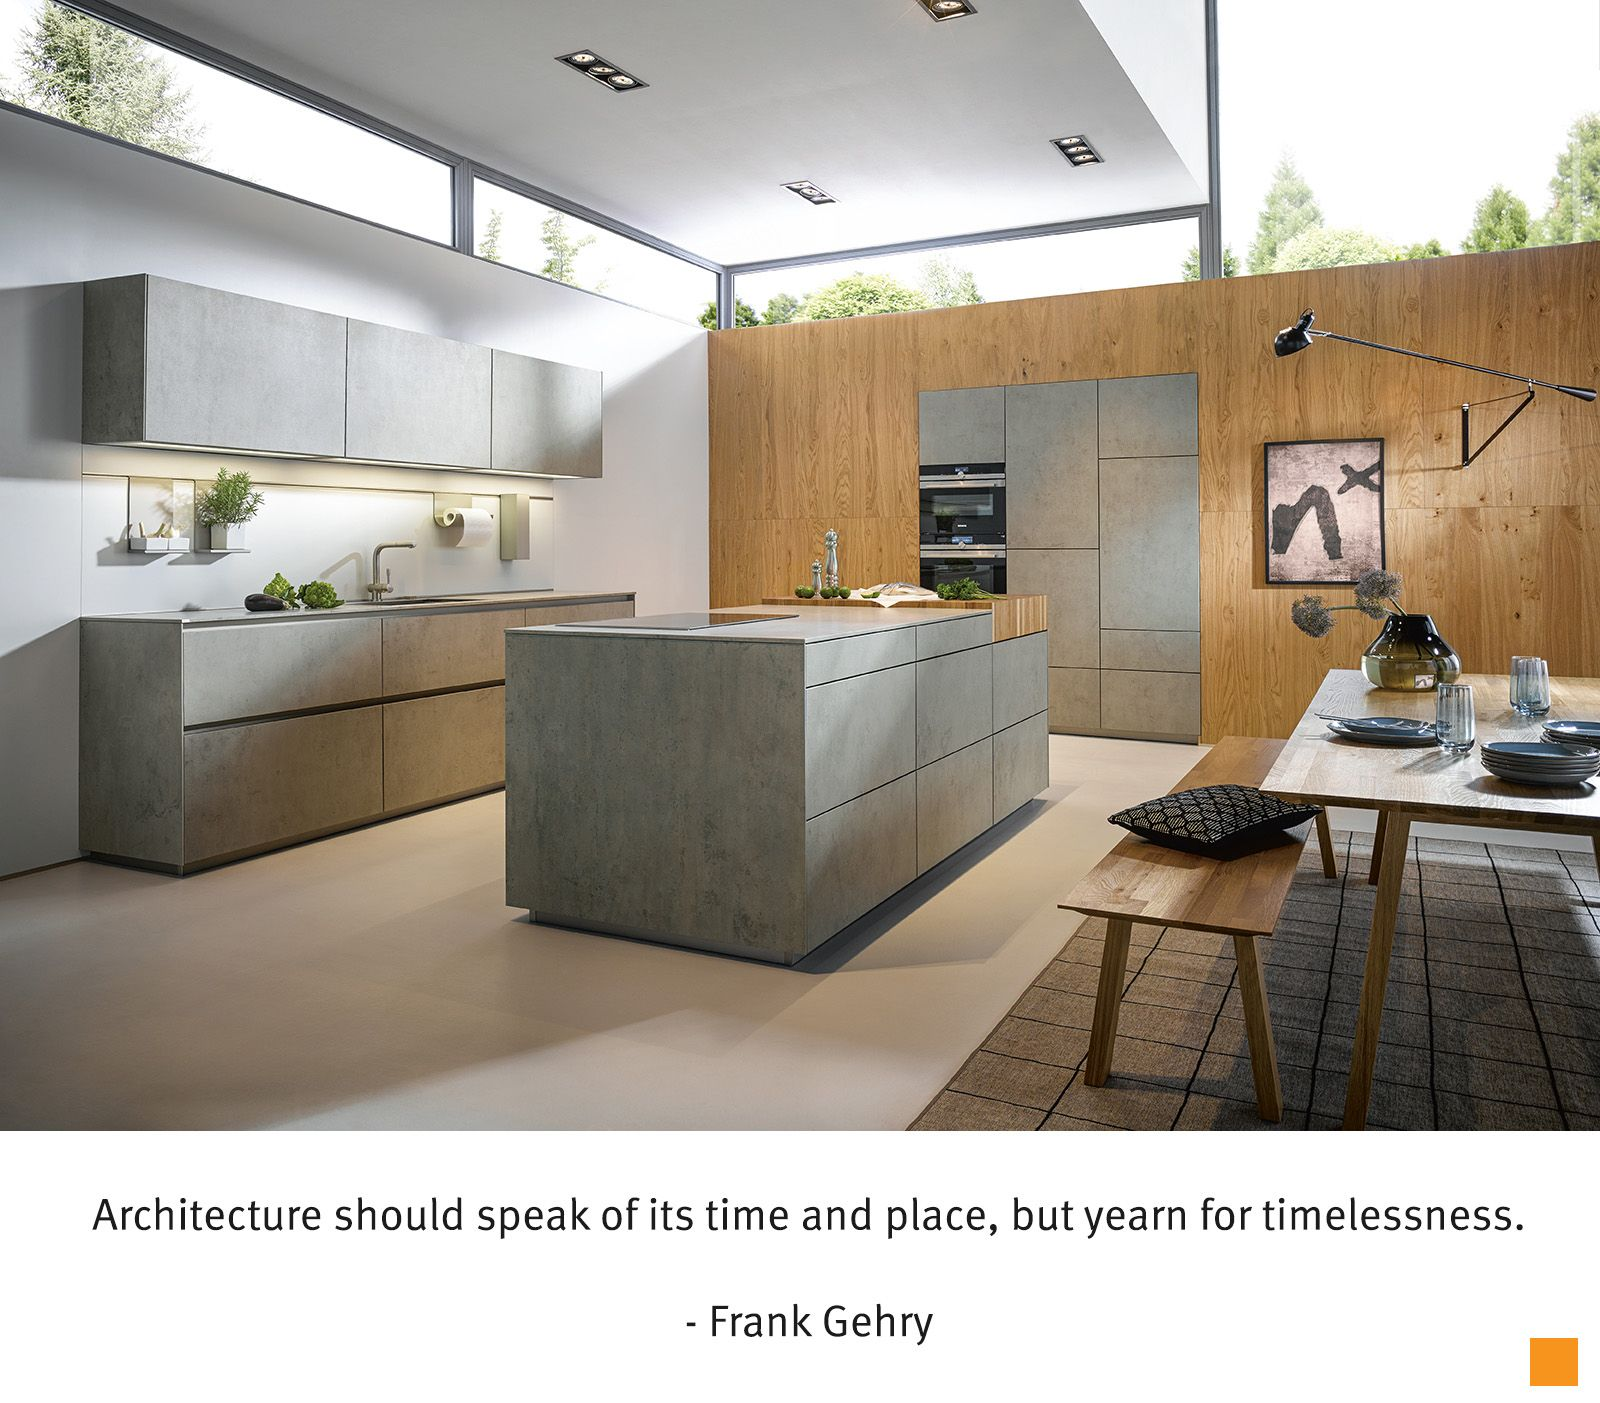 Next125 Kitchen Model Nx950 With Ceramic Fronts In Concrete Grey Effect Partnered With War German Kitchen Design Kitchen Design Companies Kitchen Remodel Plans